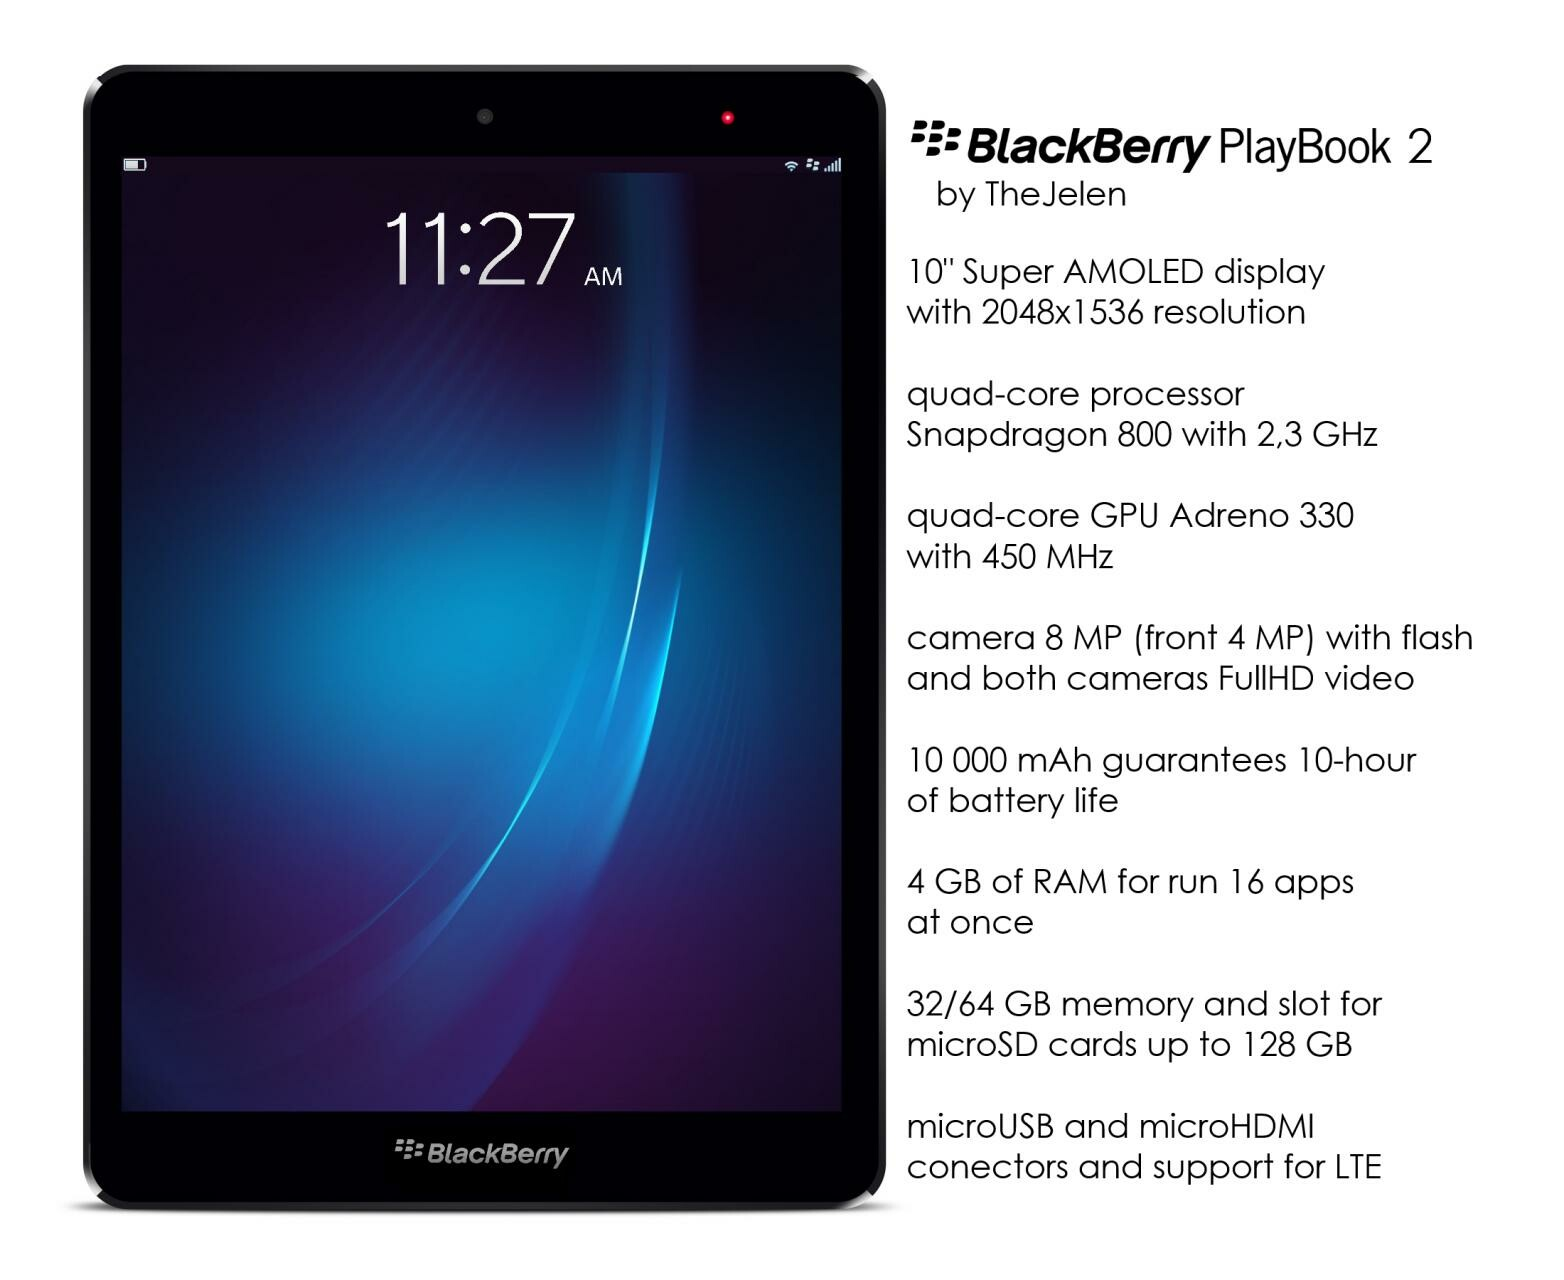 What features would your ultimate BlackBerry PlayBook 2 have